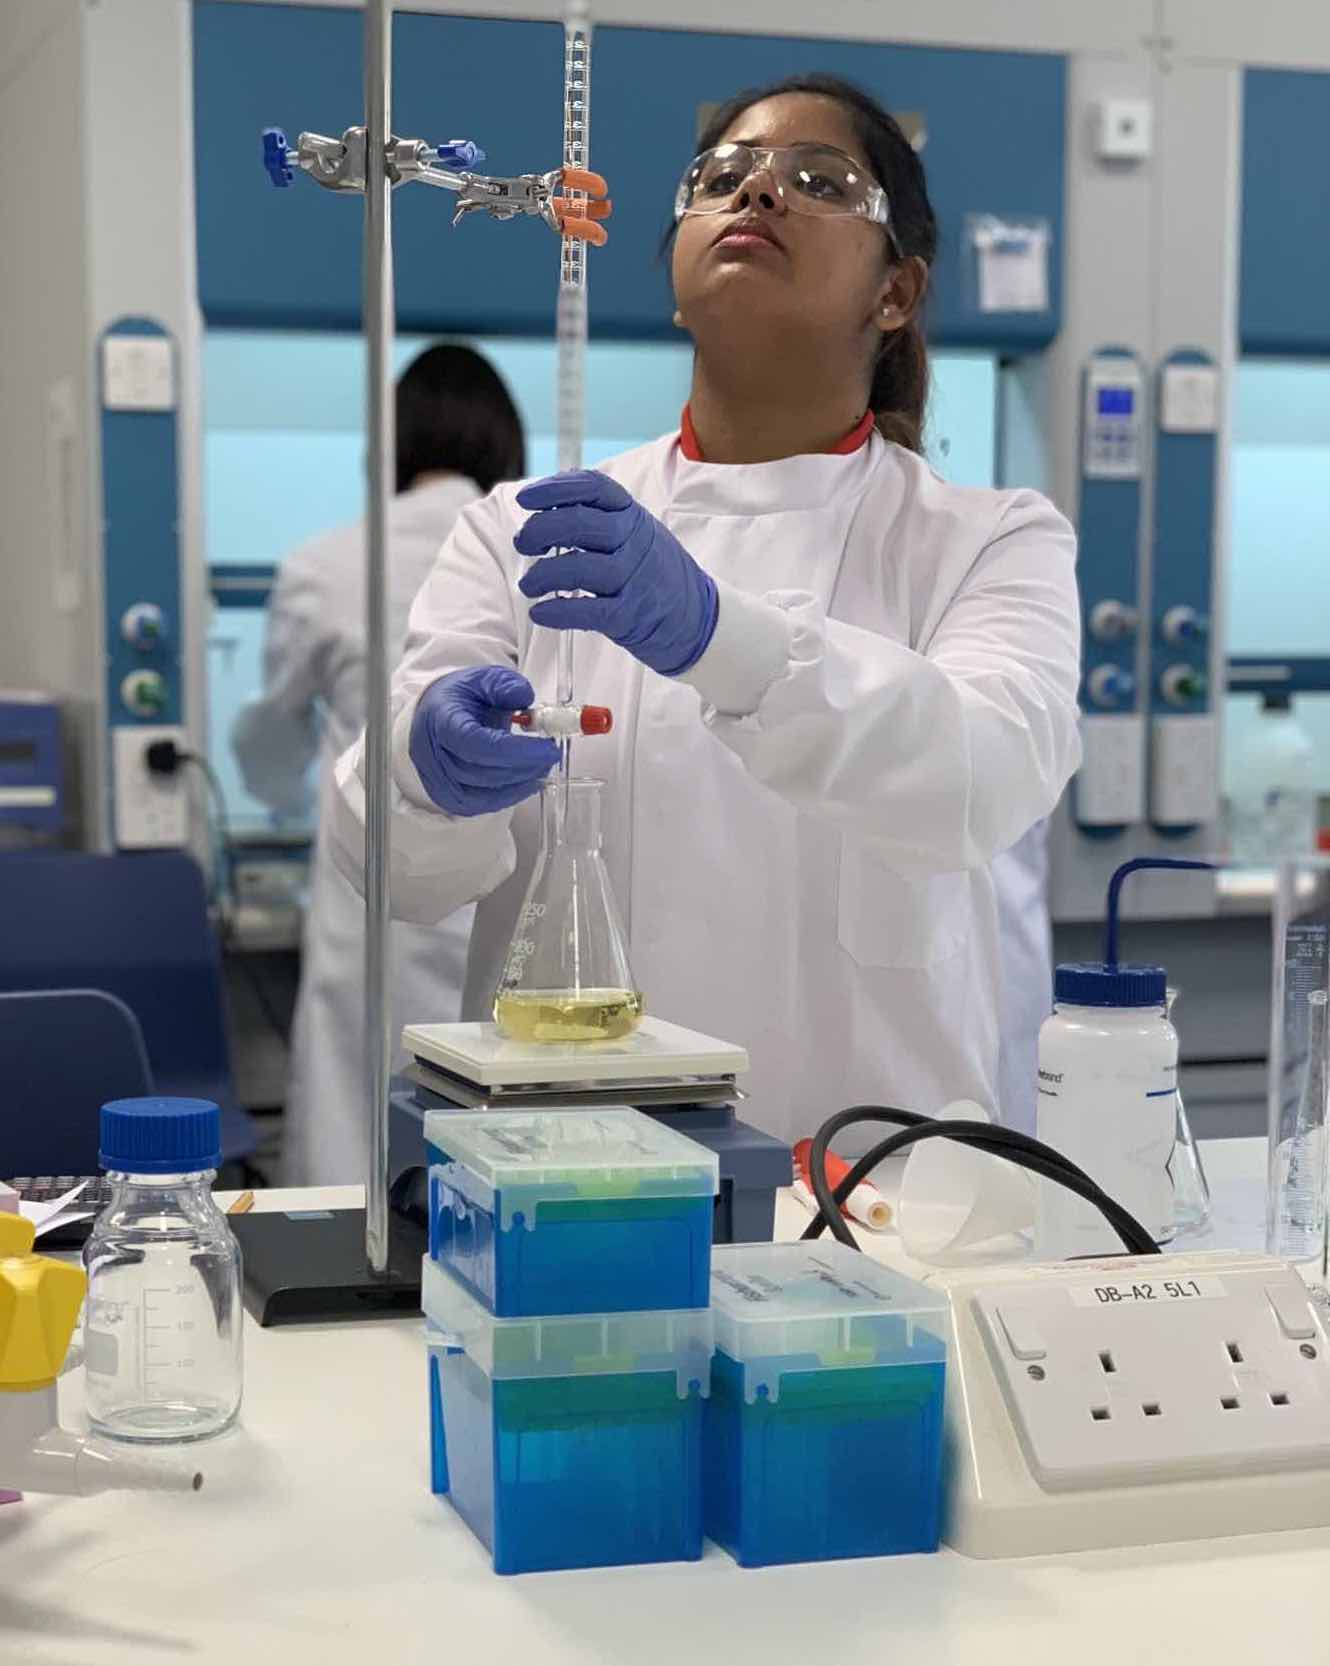 MDX Biotechnology student Lavanya Hemanth chosen for WorldSkills UK squad